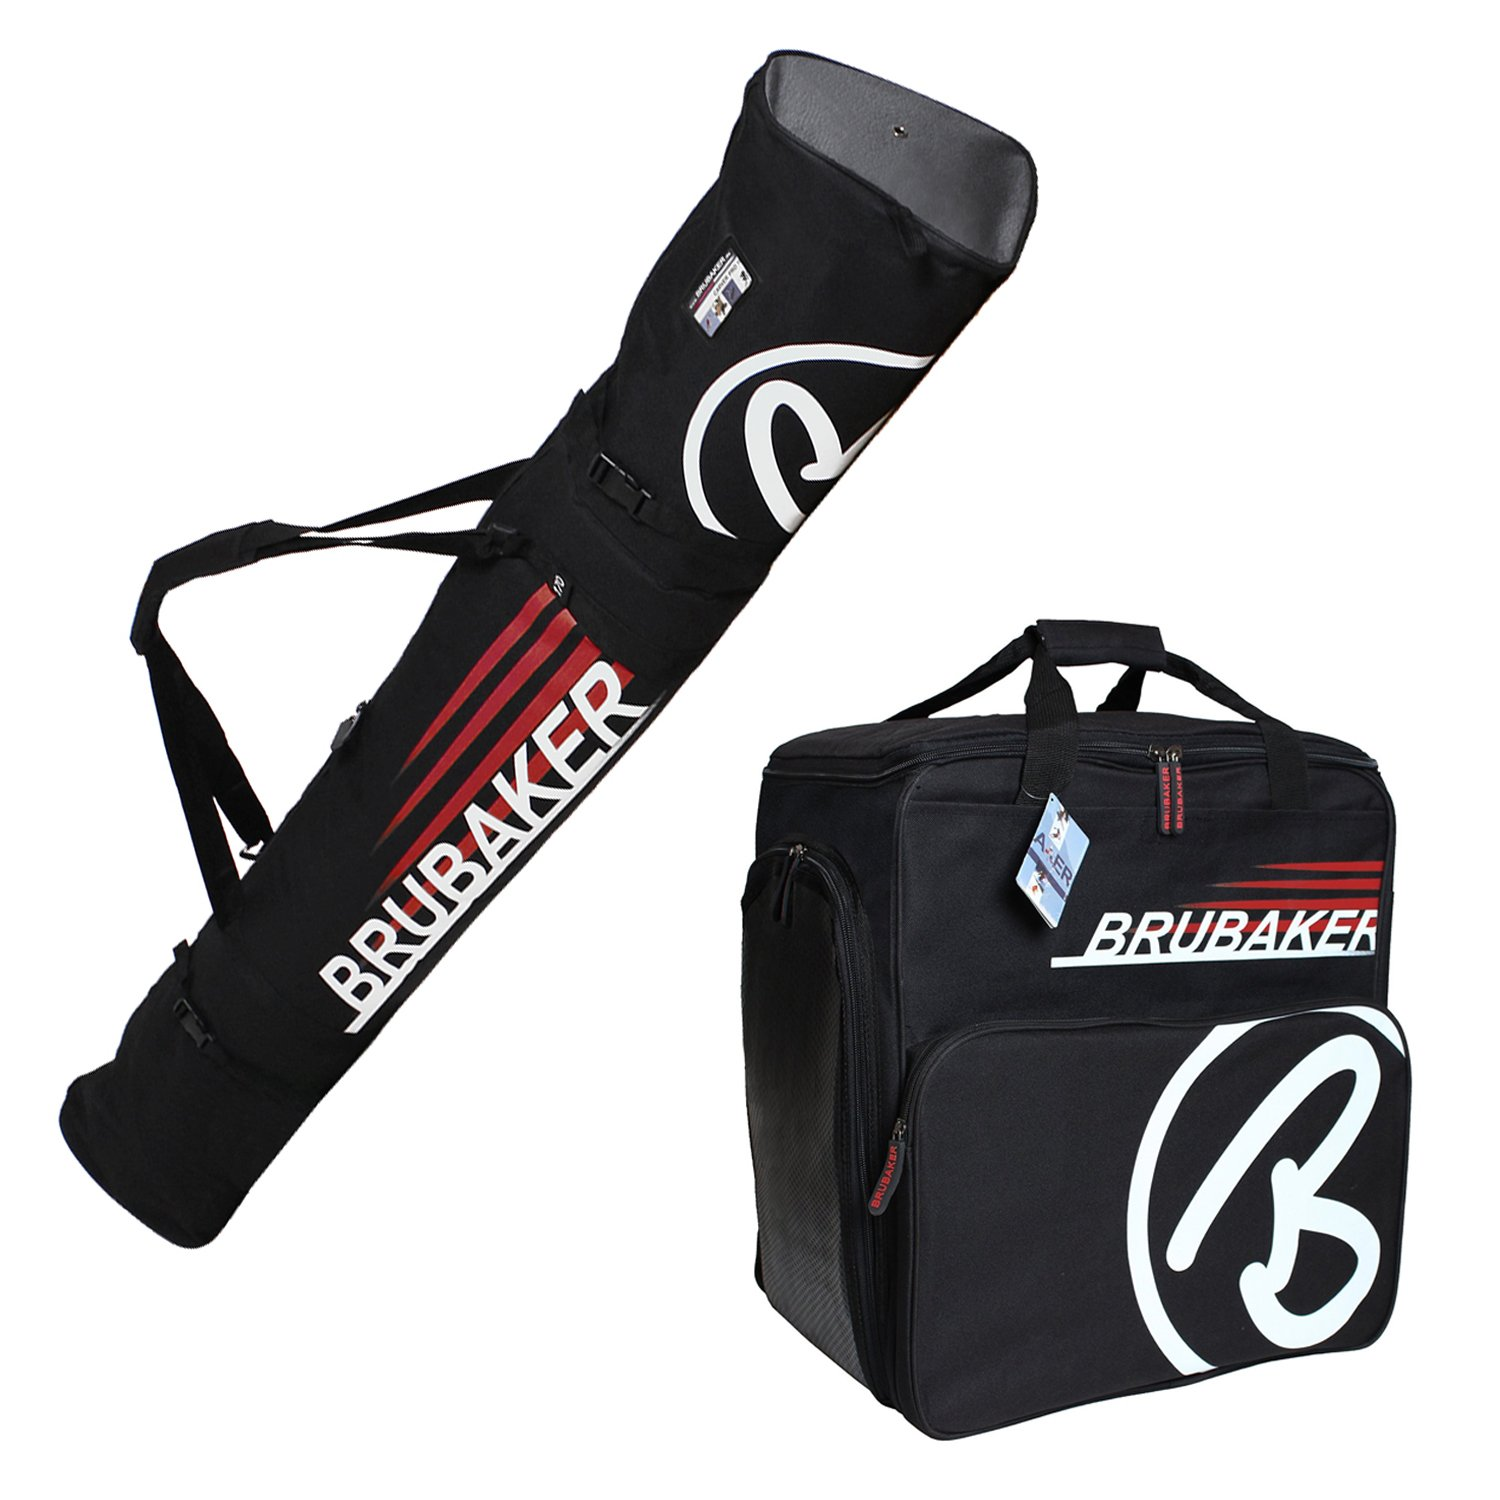 HENRY BRUBAKER ''Champion'' Combo Ski Boot Bag and Ski Bag for 1 Pair of Ski up to 170 cm, Poles, Boots and Helmet - Black Red